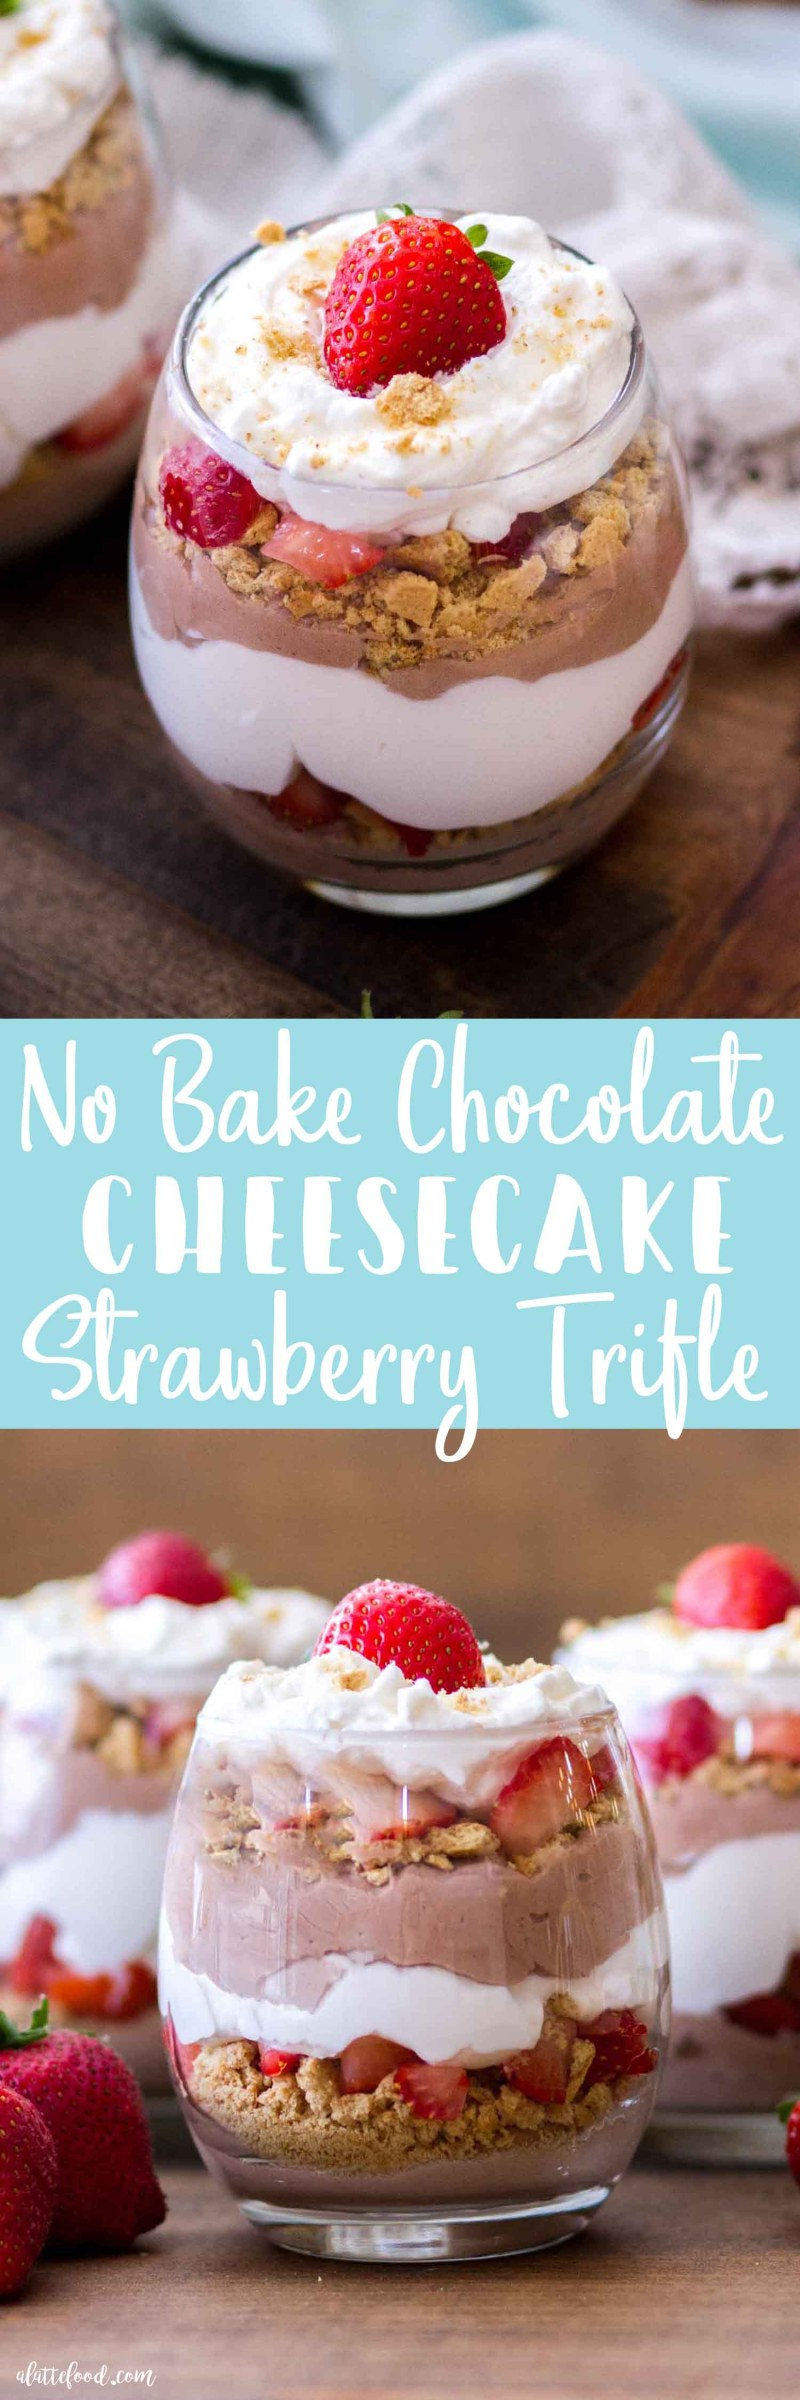 This easy no bake chocolate cheesecake recipe is layered with fresh strawberries, homemade whipped cream, and crushed graham crackers. This pretty little chocolate strawberry cheesecake trifle is so simple to make, incredibly rich, and a sweet Valentine's Day dessert! Of course, if you're like me, you'd eat this No Bake Chocolate Cheesecake Strawberry Trifle for dessert all year long. Plus, a video down below!